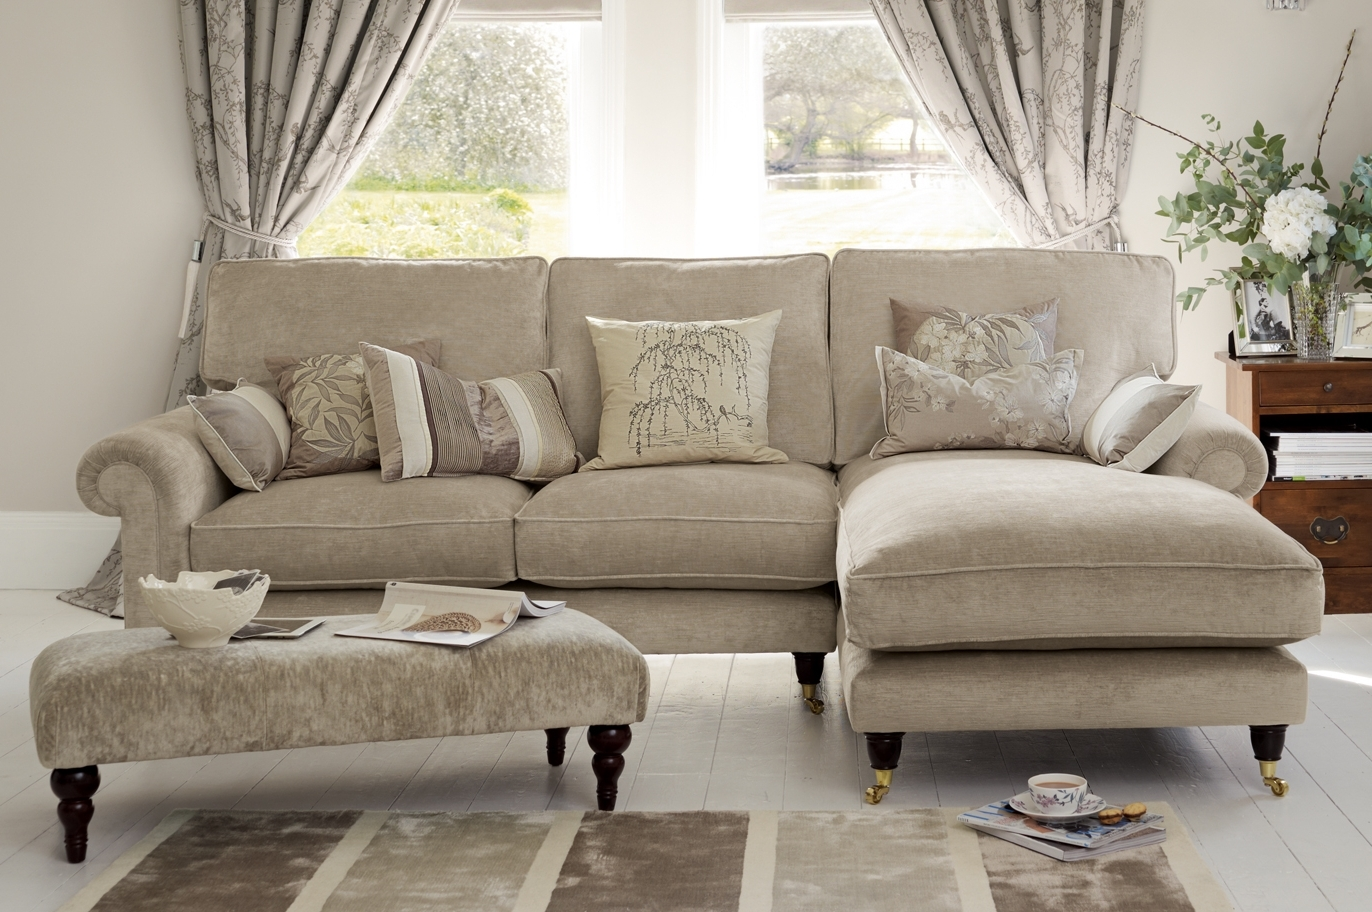 """Most Recent Kingston Sectional Sofas within Kingston"""" Sectional Sofa With Chaise In Sable Beige From Laura"""